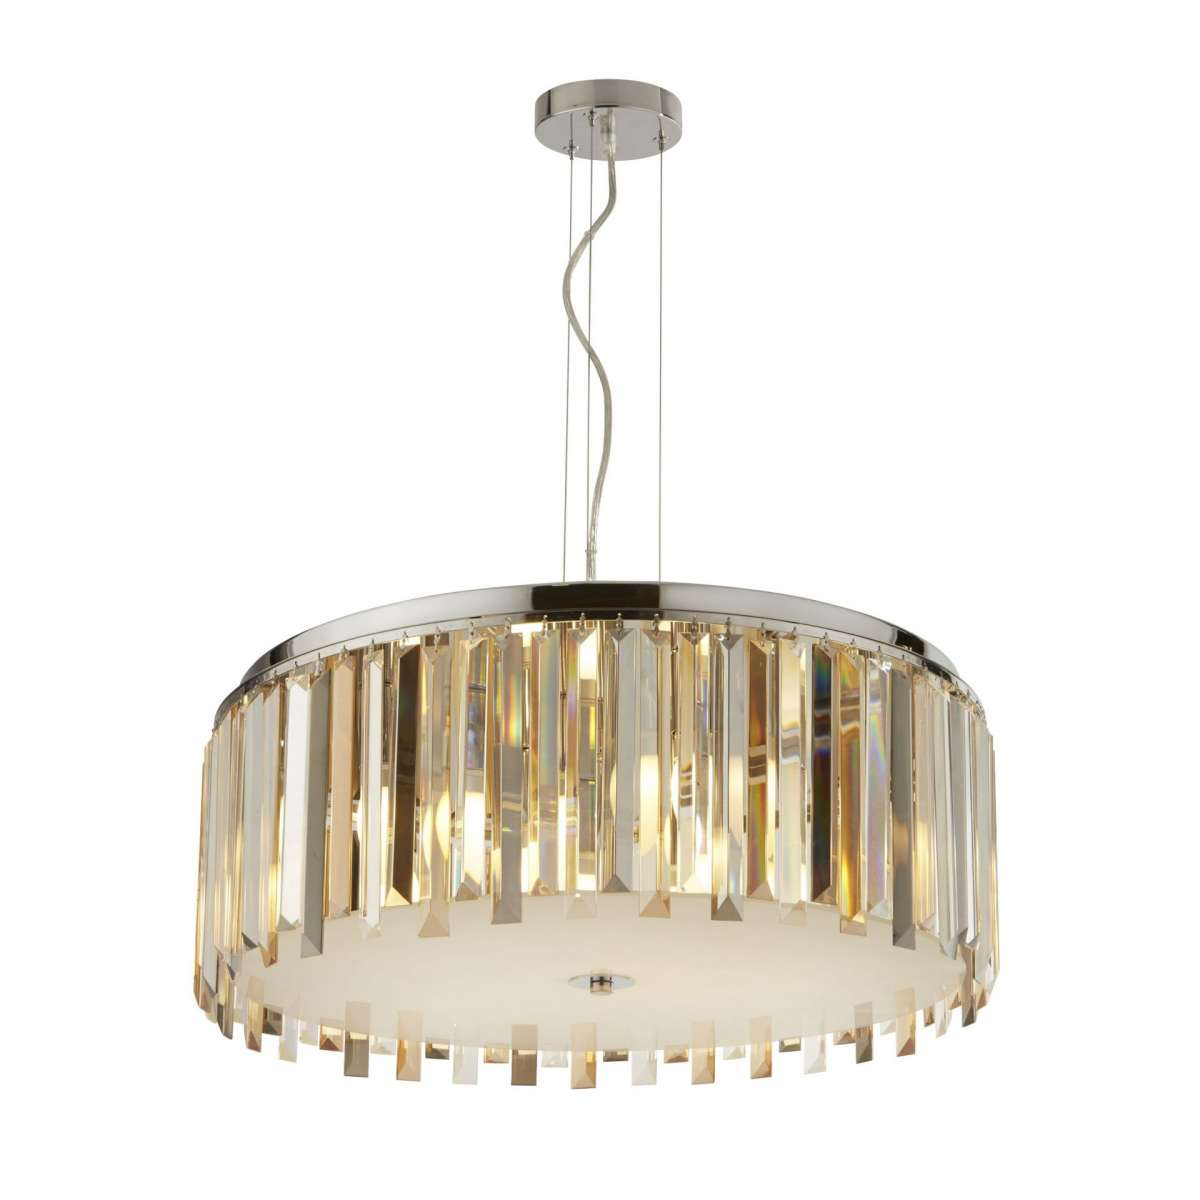 Clarissa 5 Light Drum Pendant Chrome With Amber and Smokey Crystal